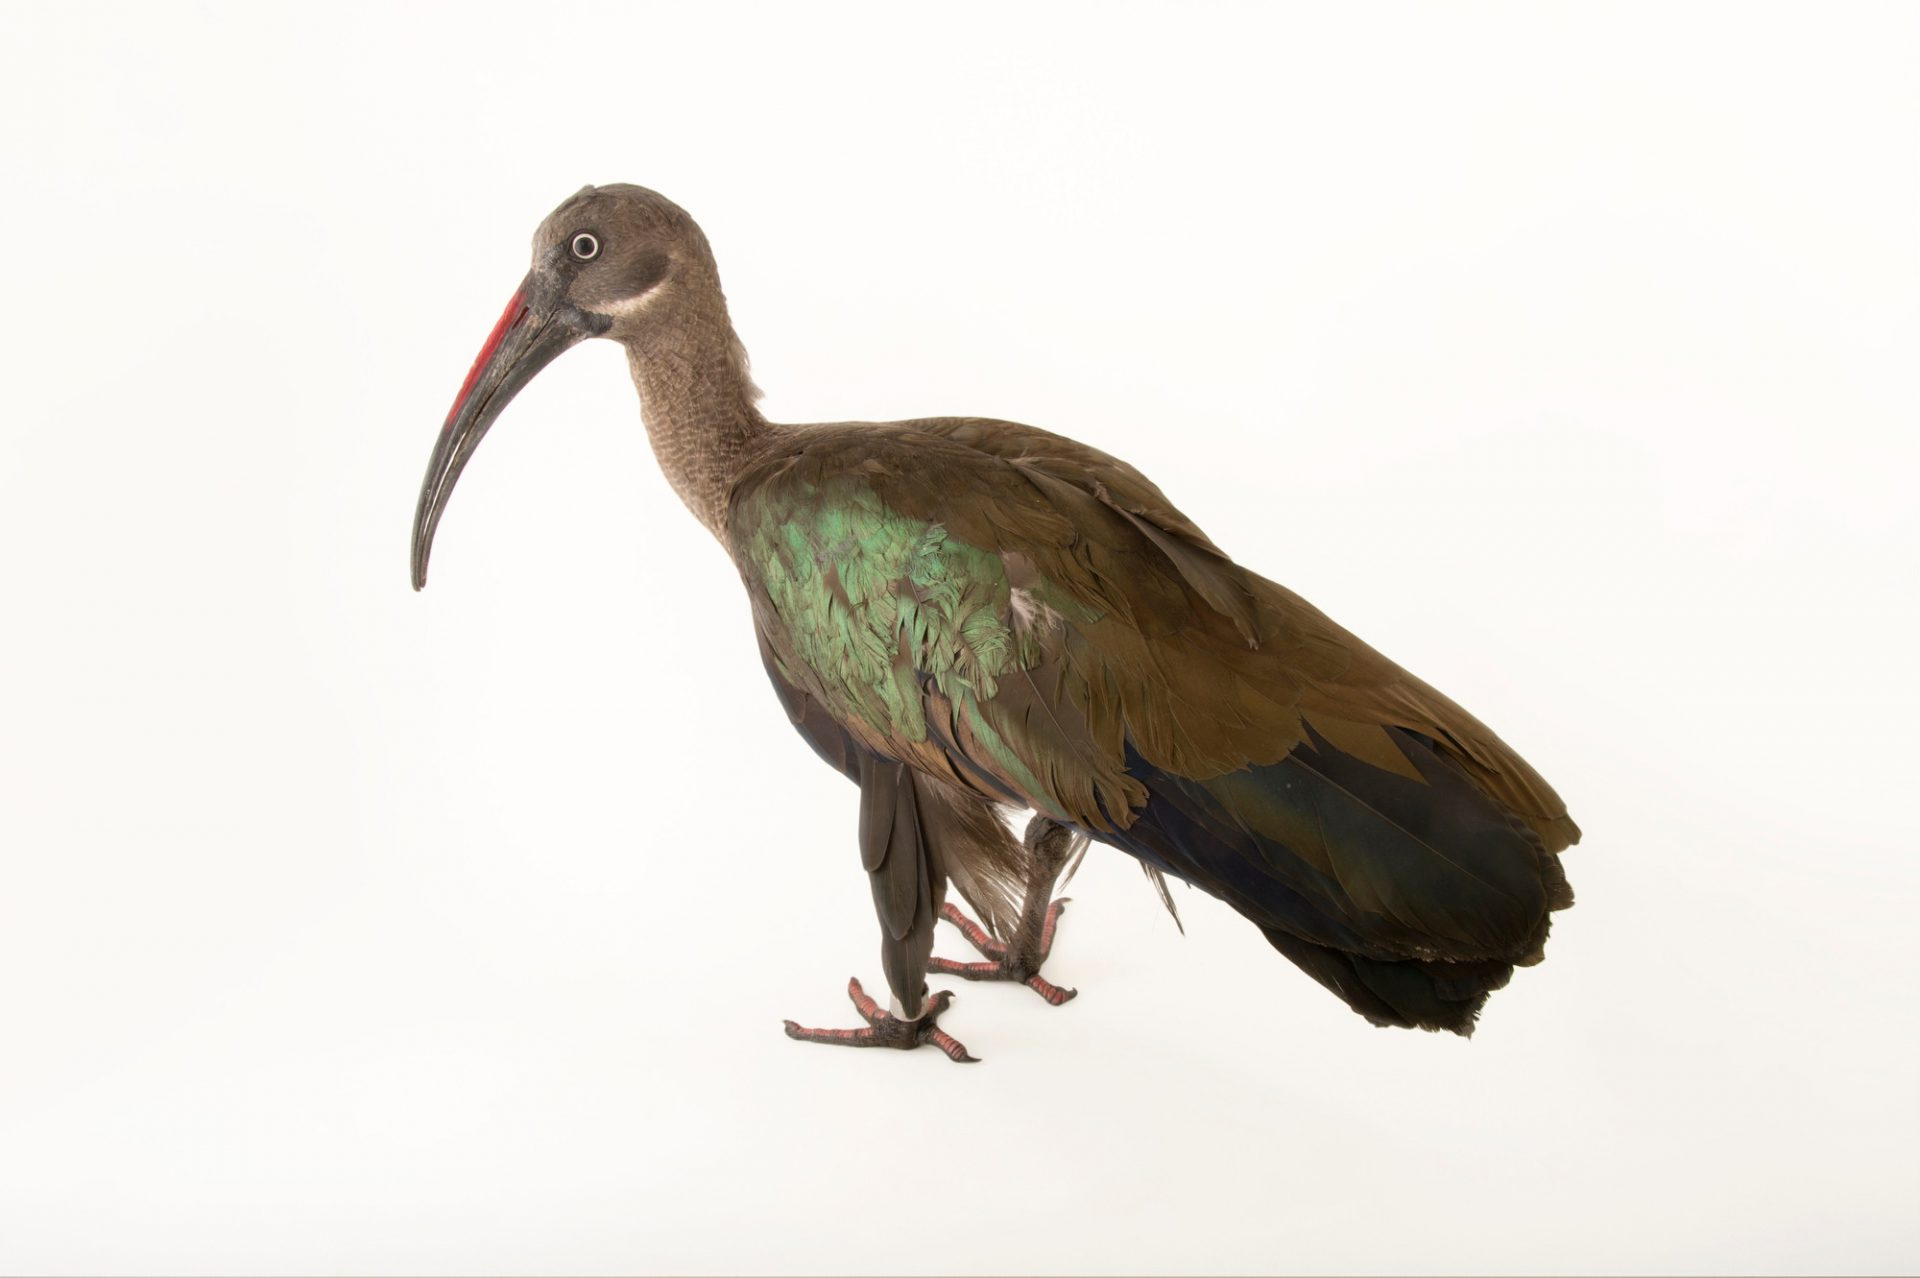 Hadada or Hadeda Ibis (Bostrychia hagedash brevirostris) at the Henry Doorly Zoo and Aquarium.